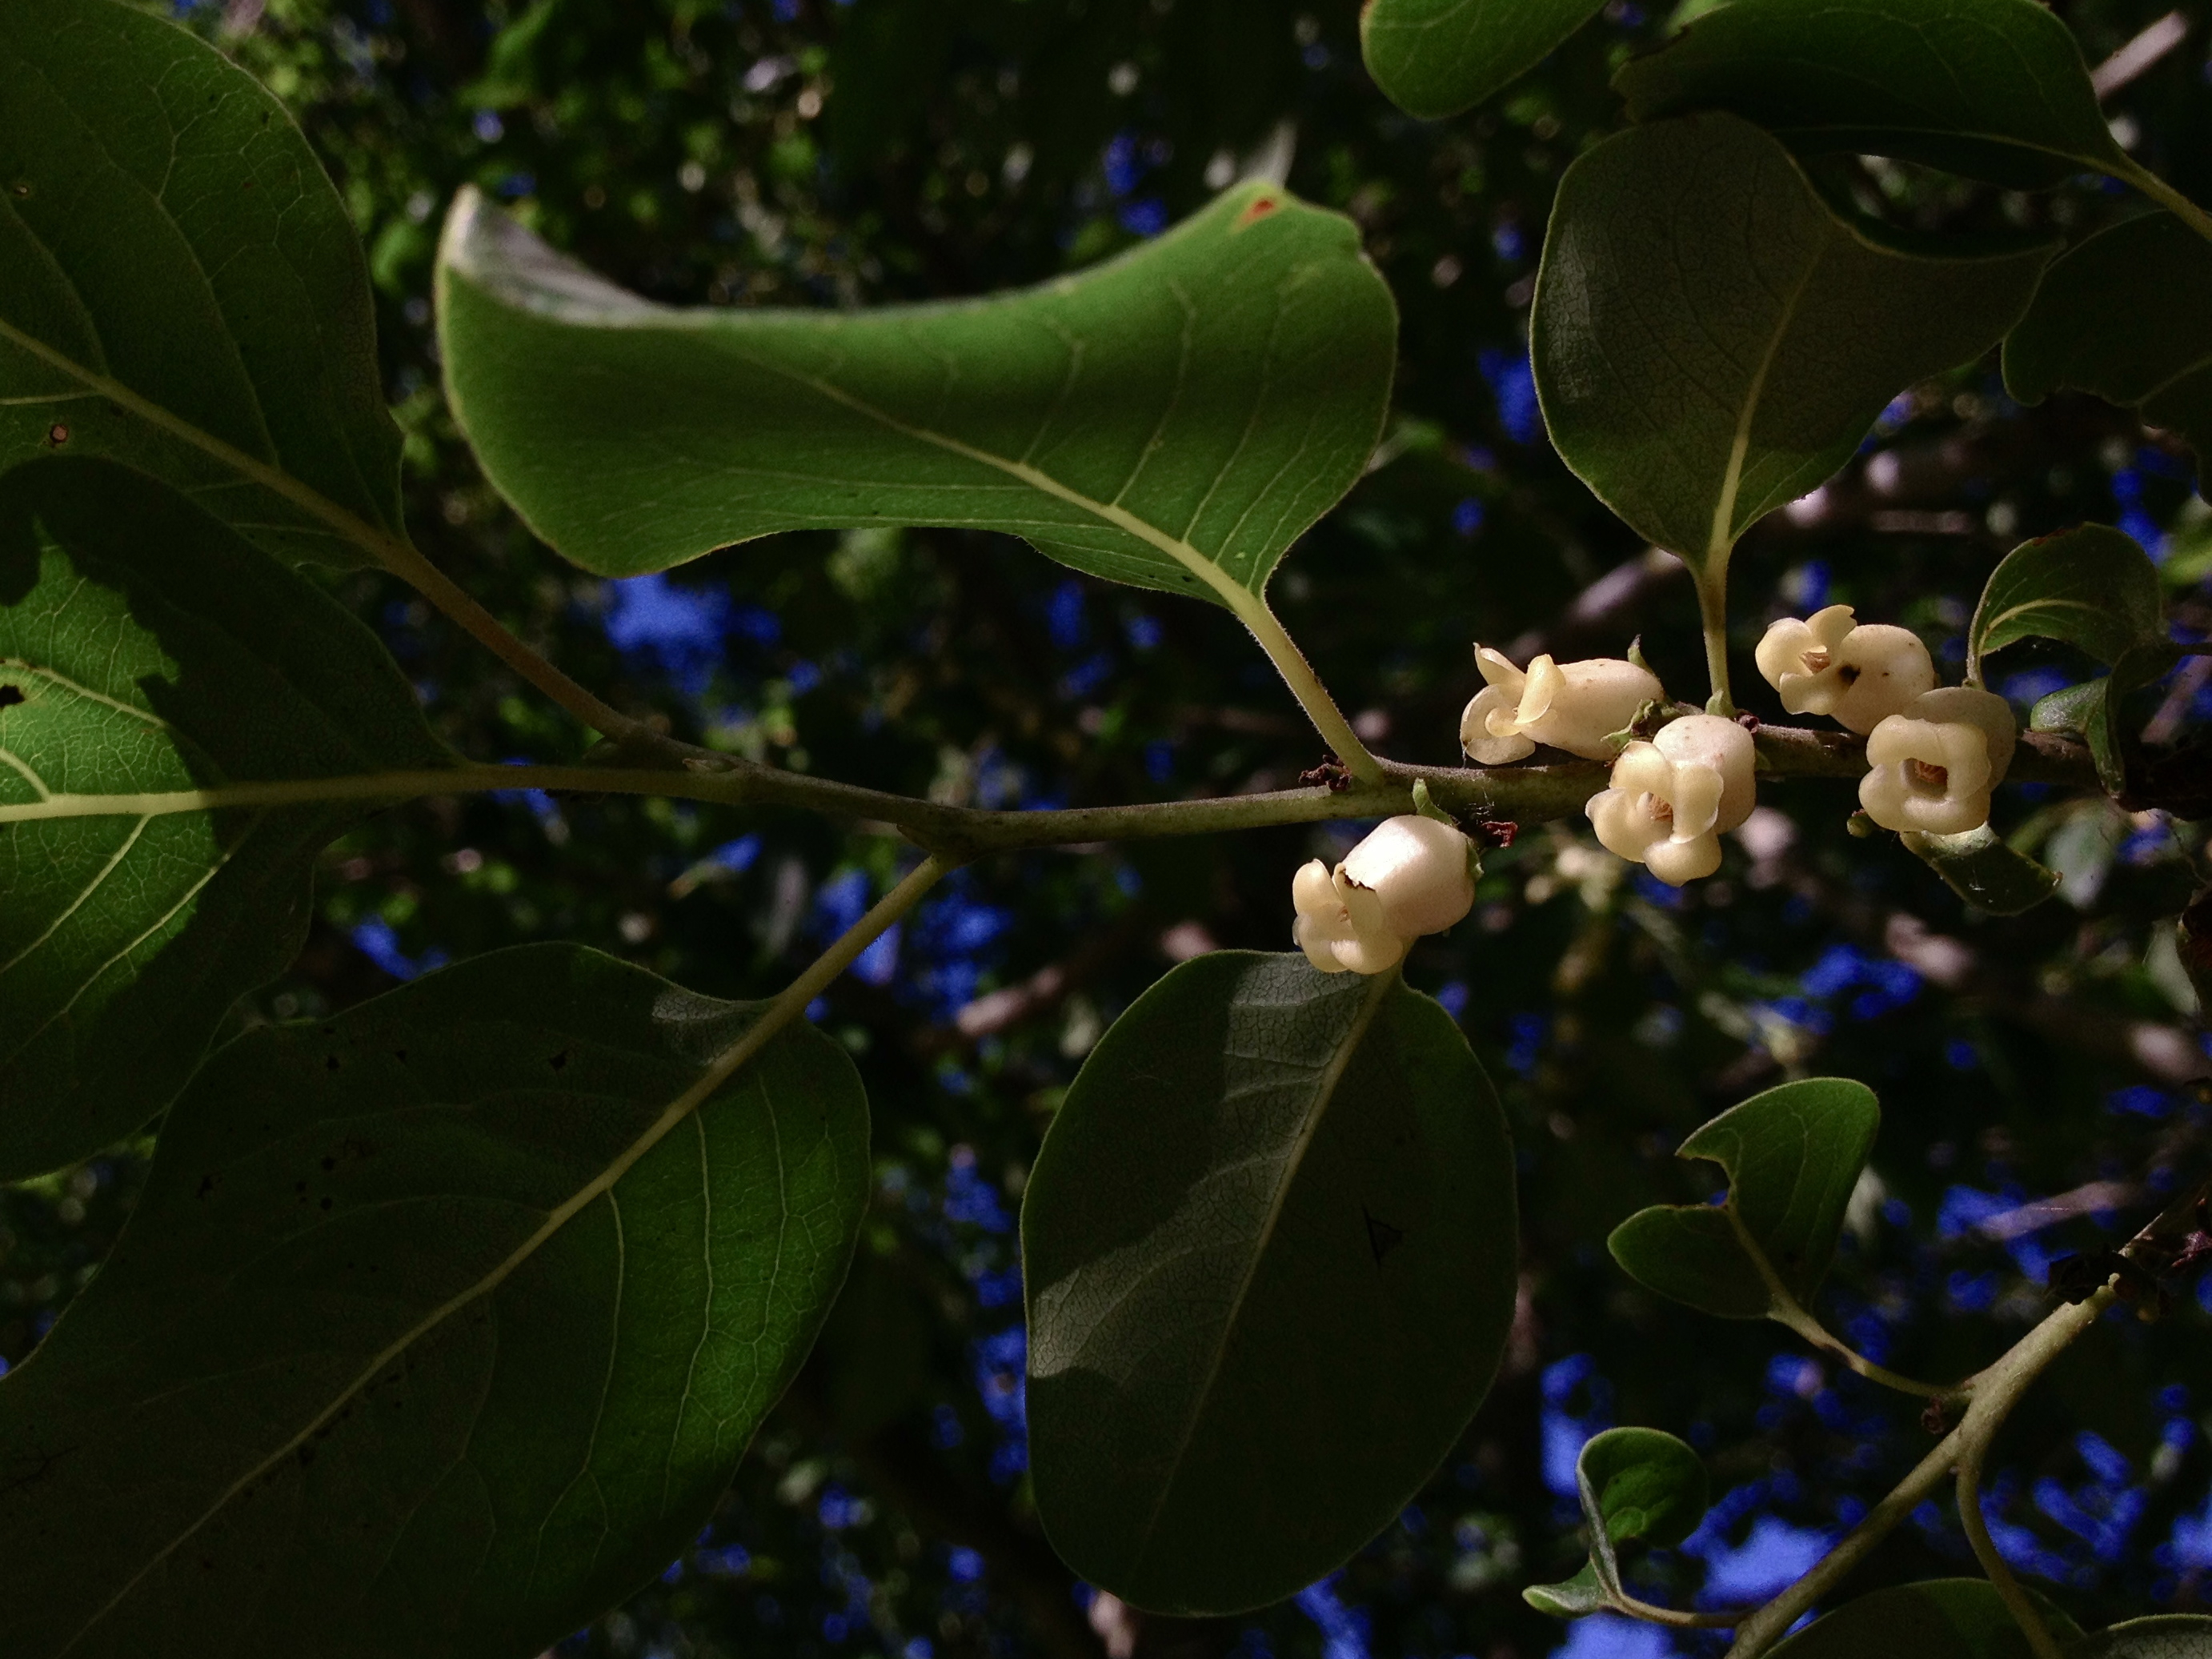 Image of common persimmon